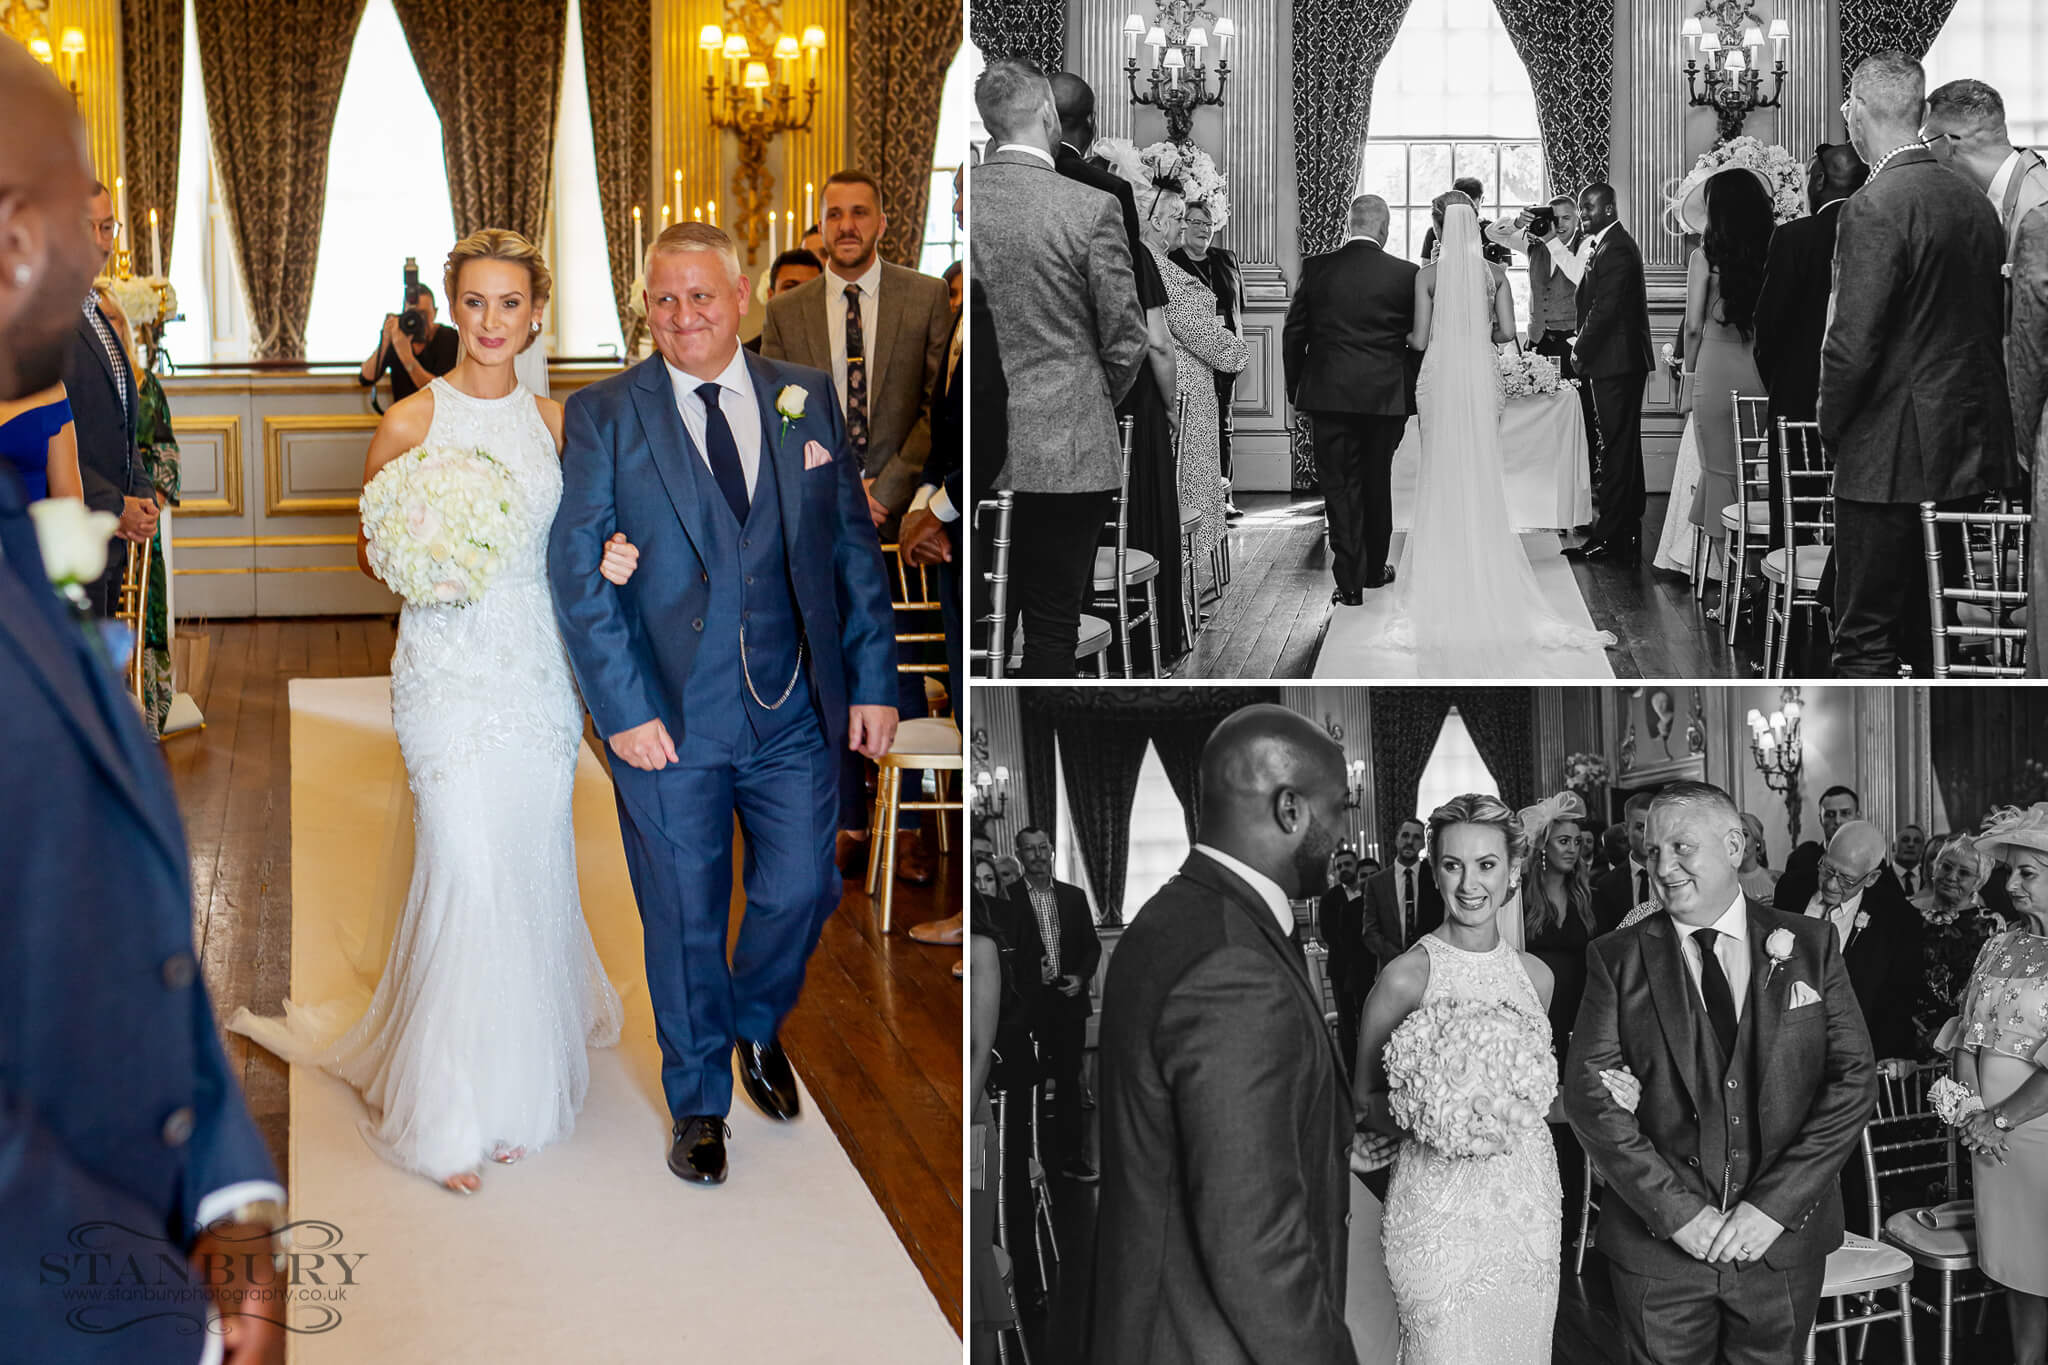 knowsley-hall-wedding-stanbury-photography-015